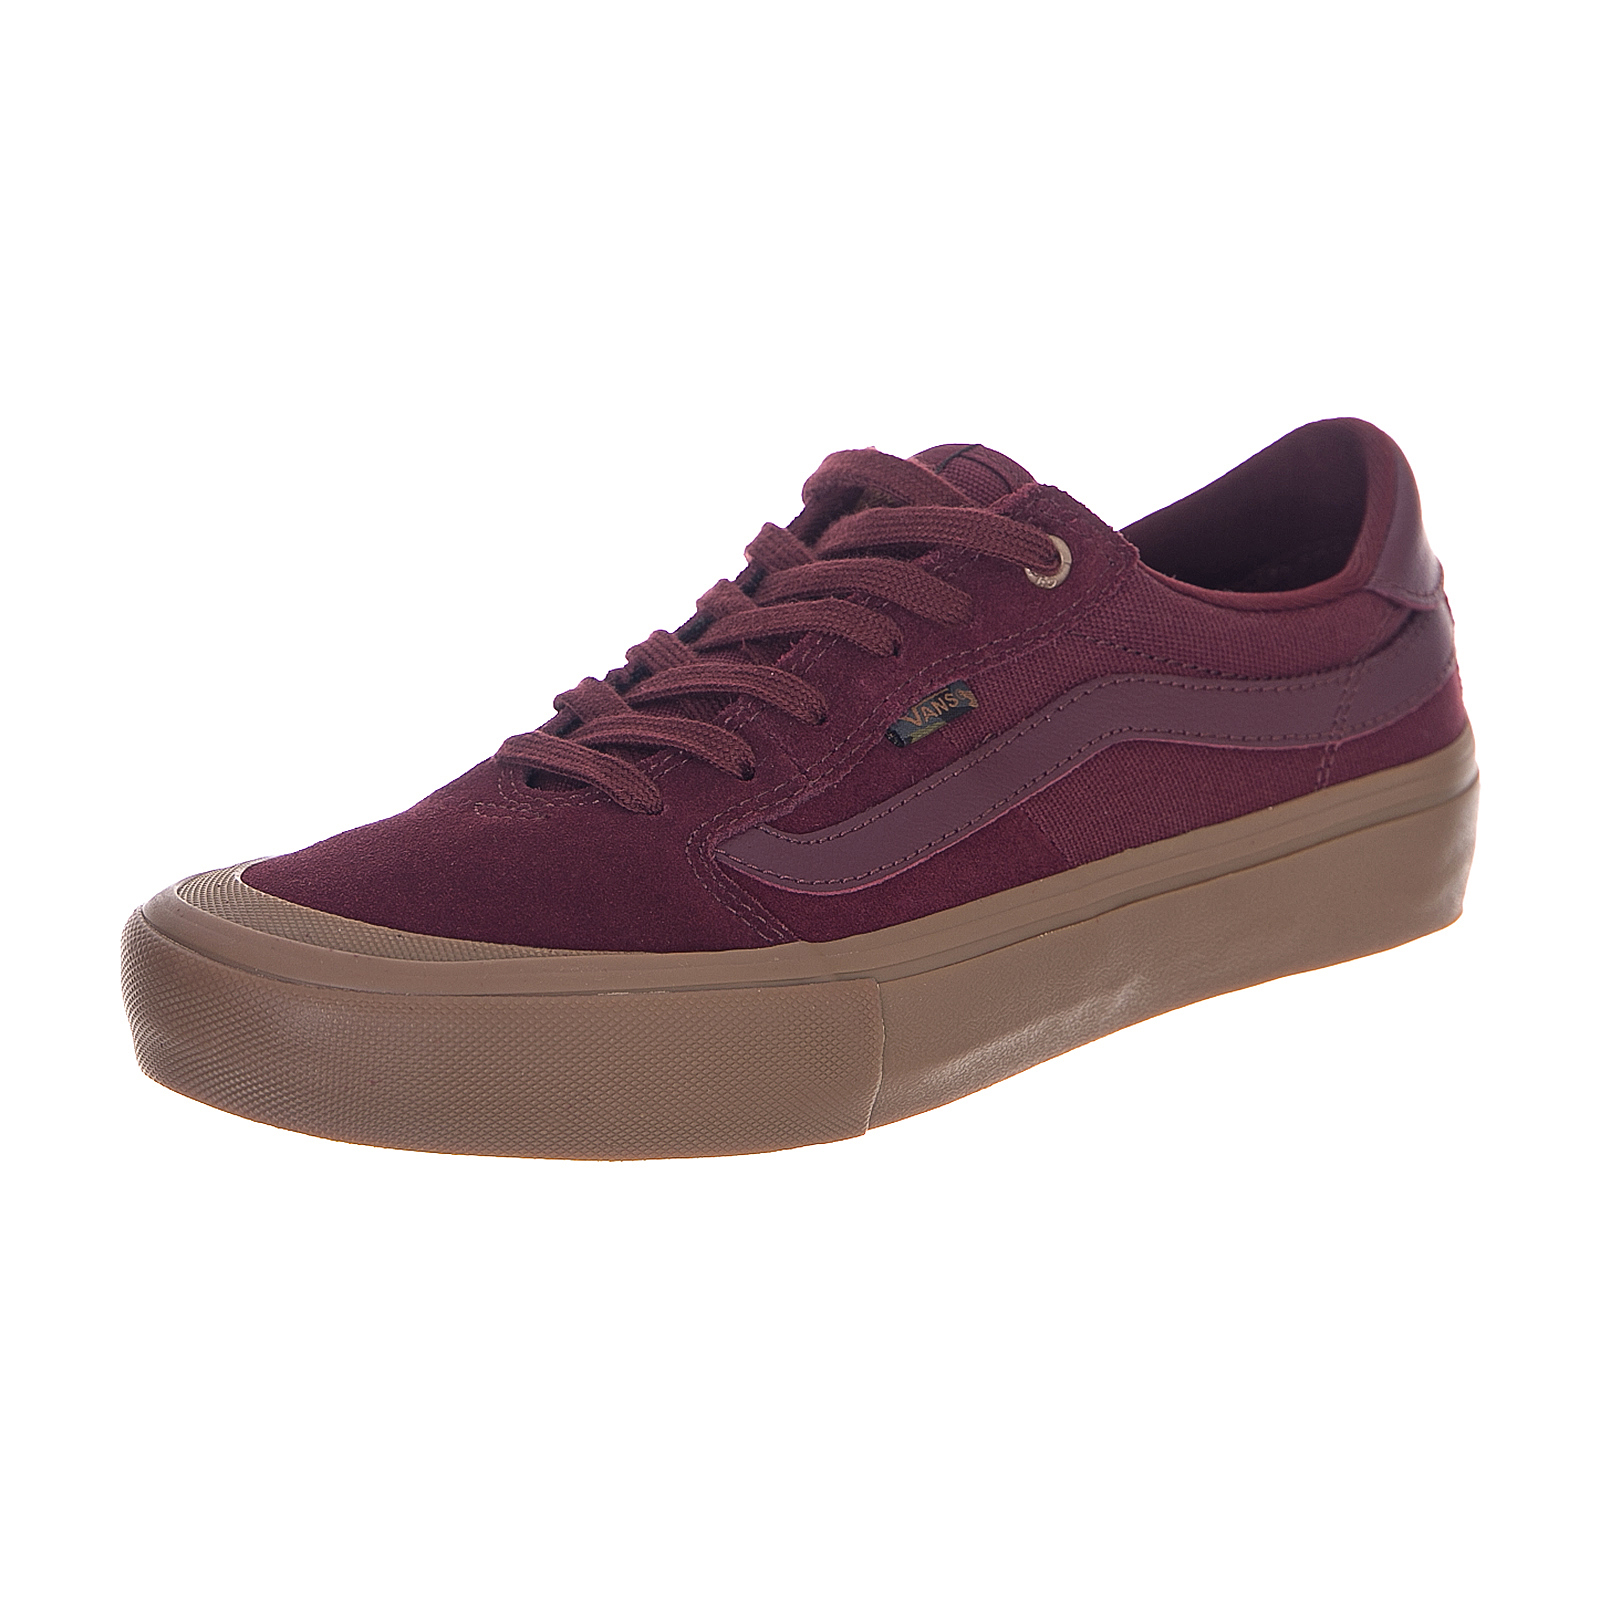 2f93b11b7a560a Vans Sneakers Style 112 Pro (Camouflage) Port Royal   Gum Burgundy ...